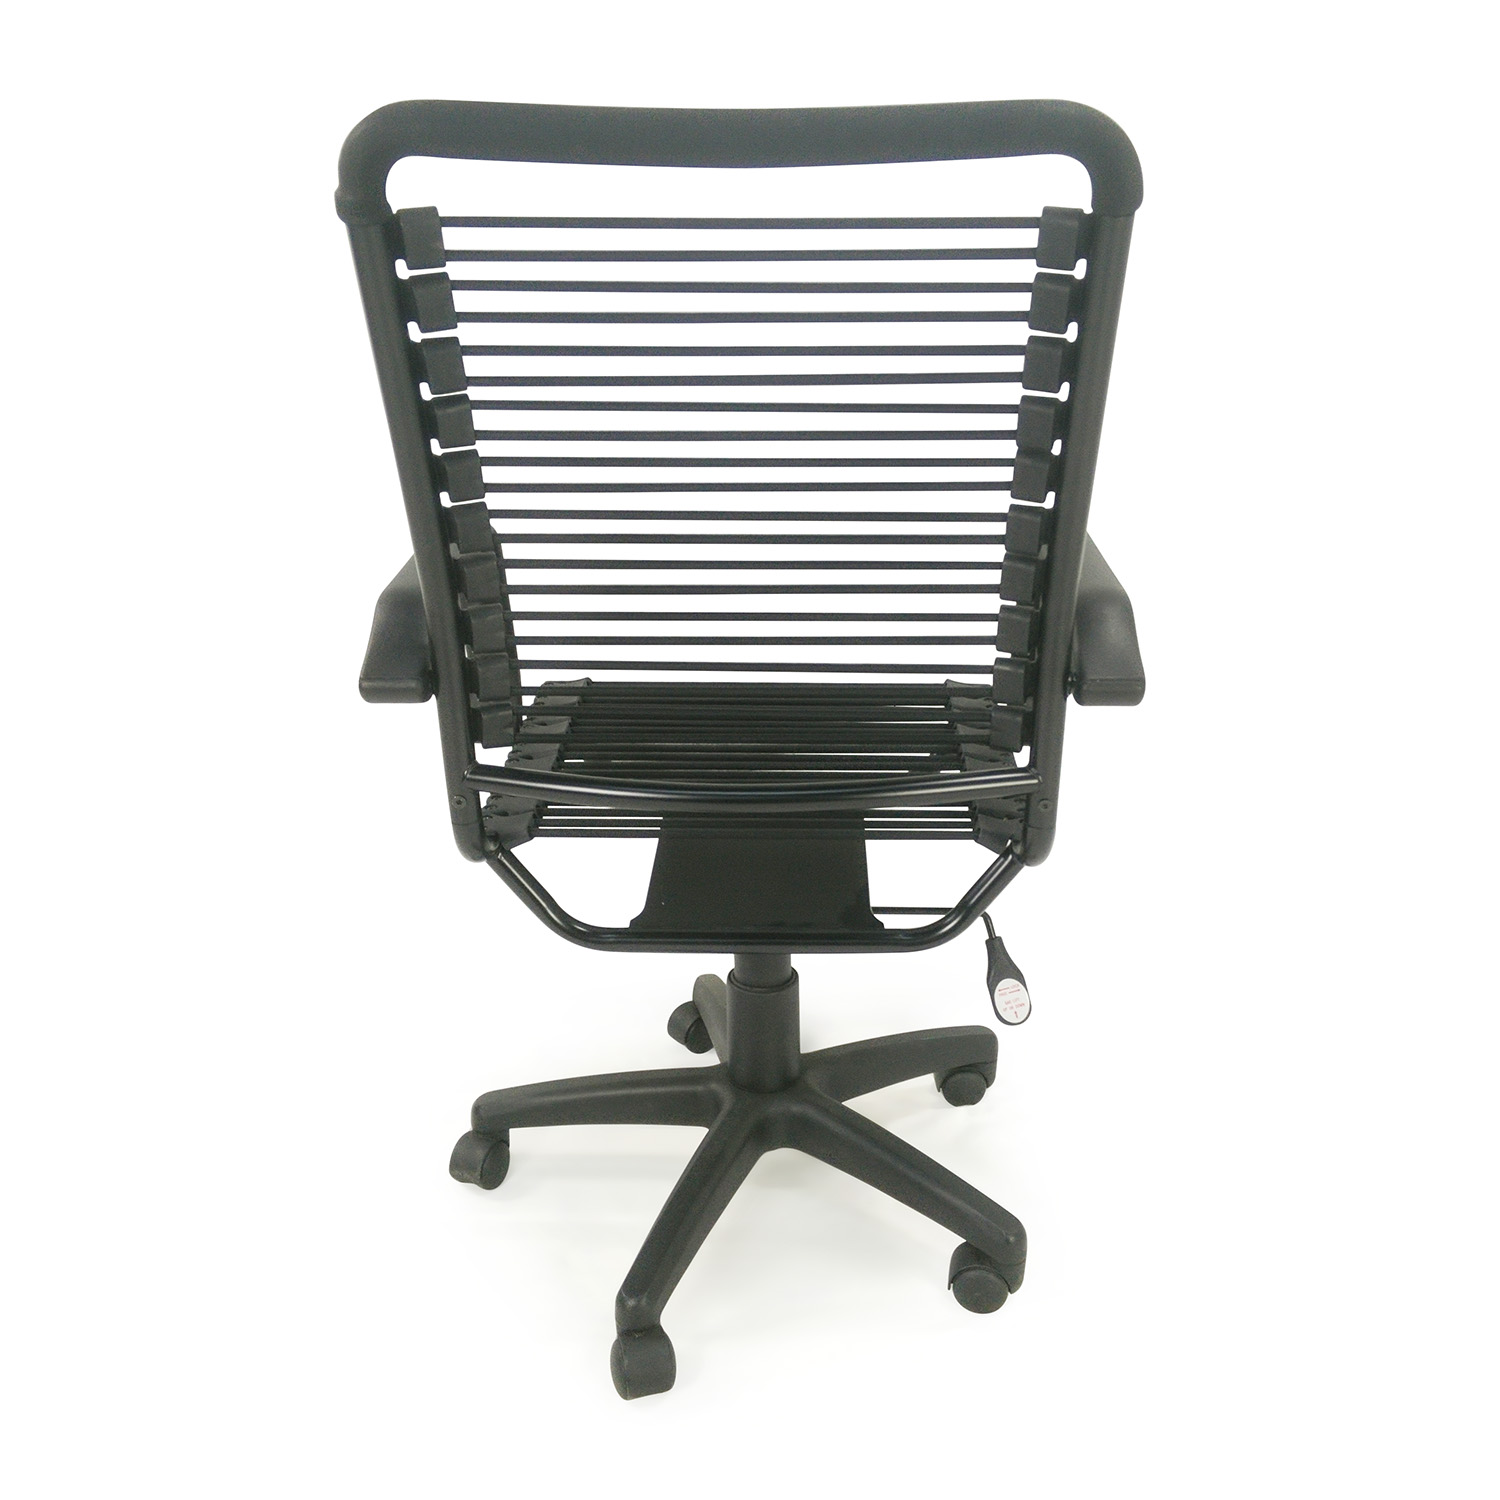 Bungie Office Chair 90 Off Euro Style Euro Style Bradley Bungie Office